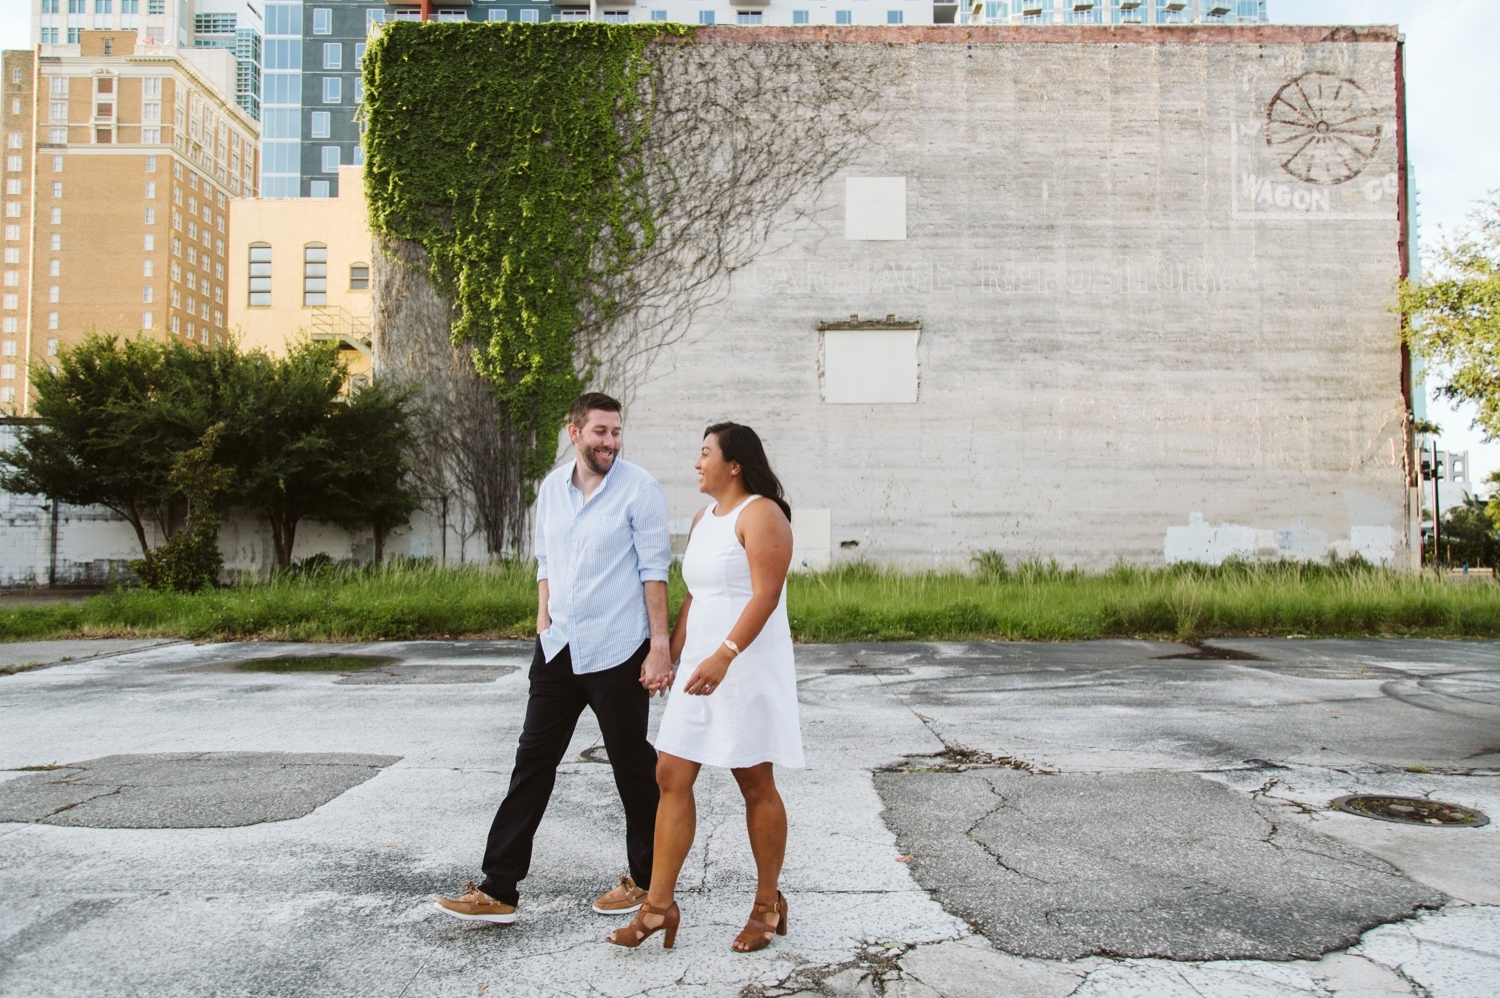 Tampa wedding photographer, Tampa engagement session, Tampa wedding photographers, wedding photographers in Tampa, luxury Tampa wedding photographer, LGBT friendly Tampa wedding photographers, gay Tampa wedding photographer, LGBT Tampa wedding photographer, LGBT Tampa wedding videographer, downtown Tampa engagement photos, downtown Tampa skyline engagement session, downtown Tampa parking garage engagement session, fort brooke parking garage, Tampa engagement session at fort Brooke parking garage, gay wedding photographers, LGBT wedding photographer